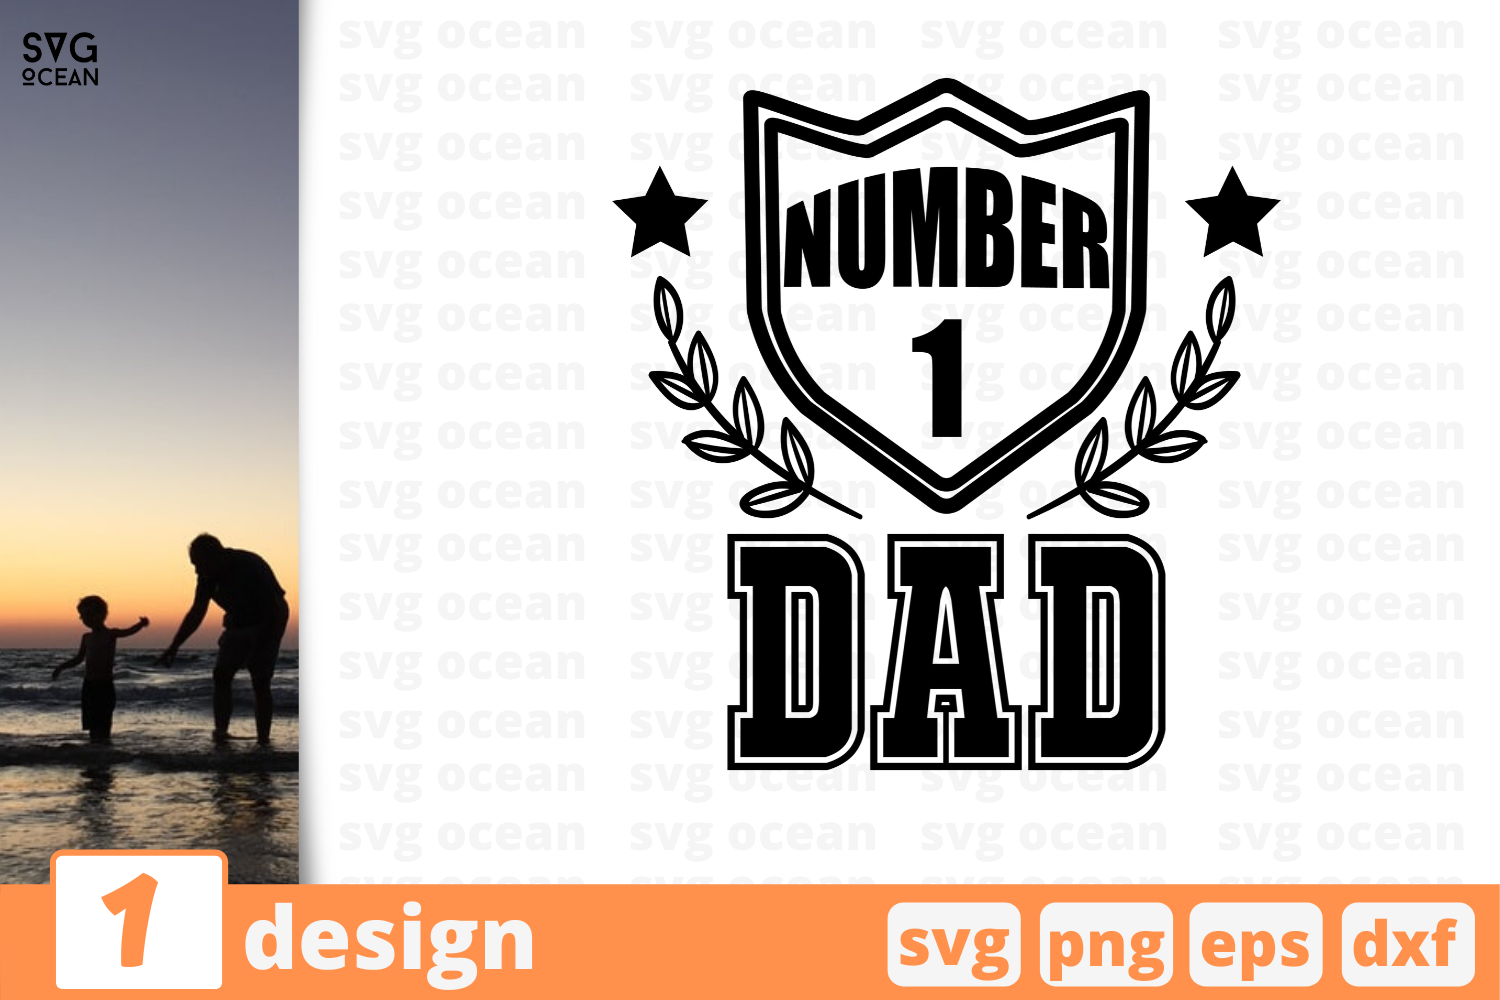 Download Free Number 1 Dad Graphic By Svgocean Creative Fabrica for Cricut Explore, Silhouette and other cutting machines.